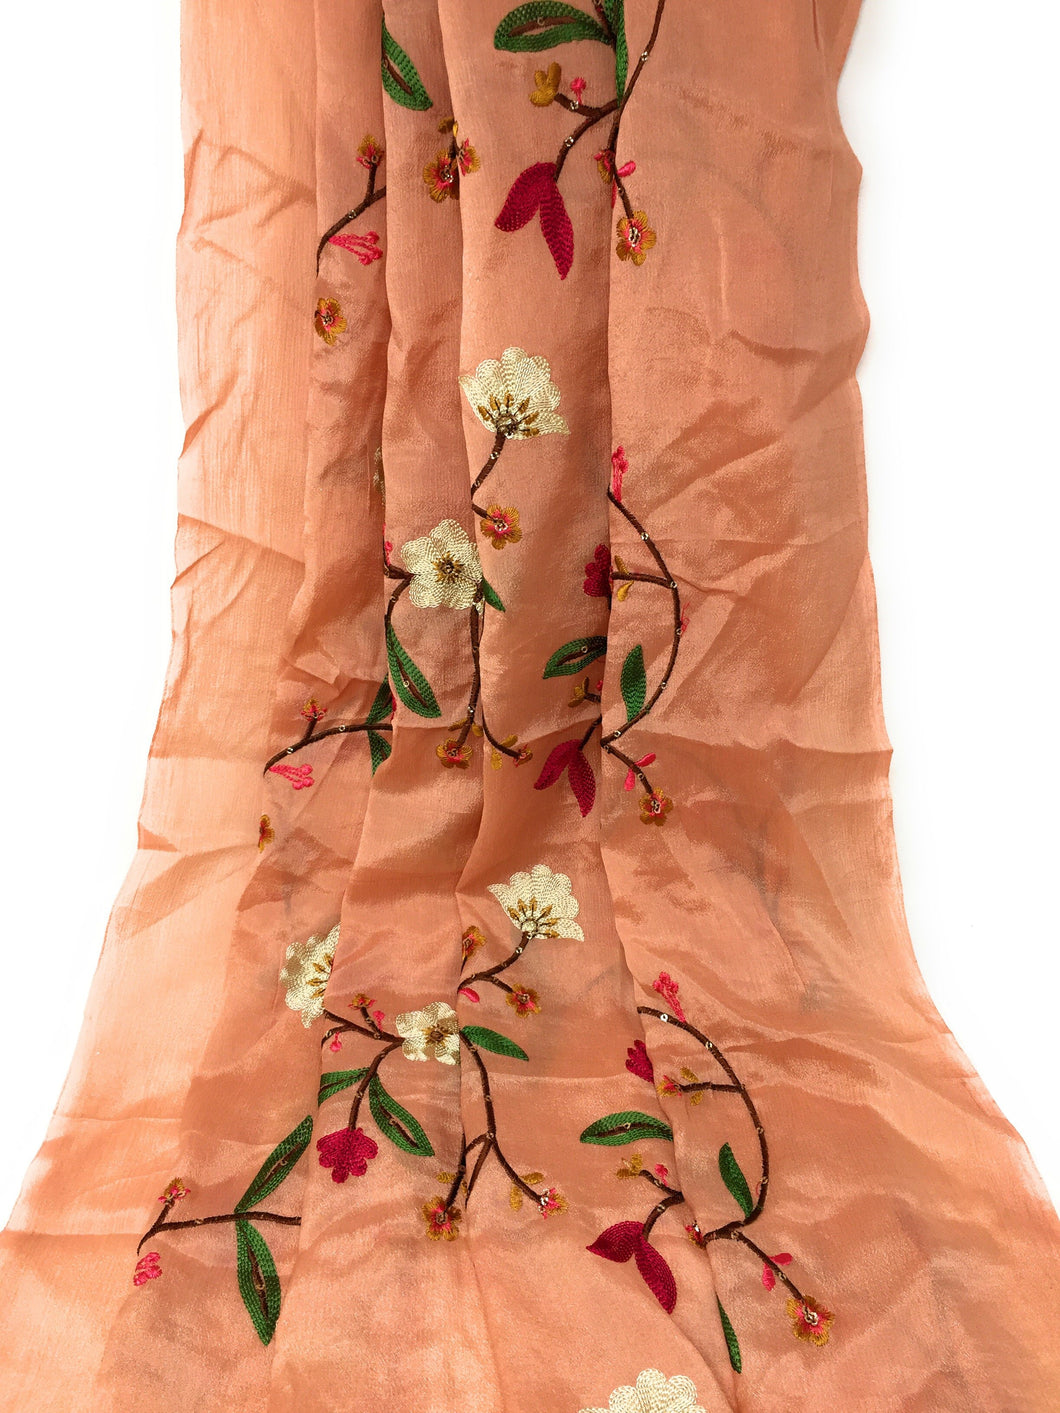 Thread Embroidery On Peach Chiffon Fabric